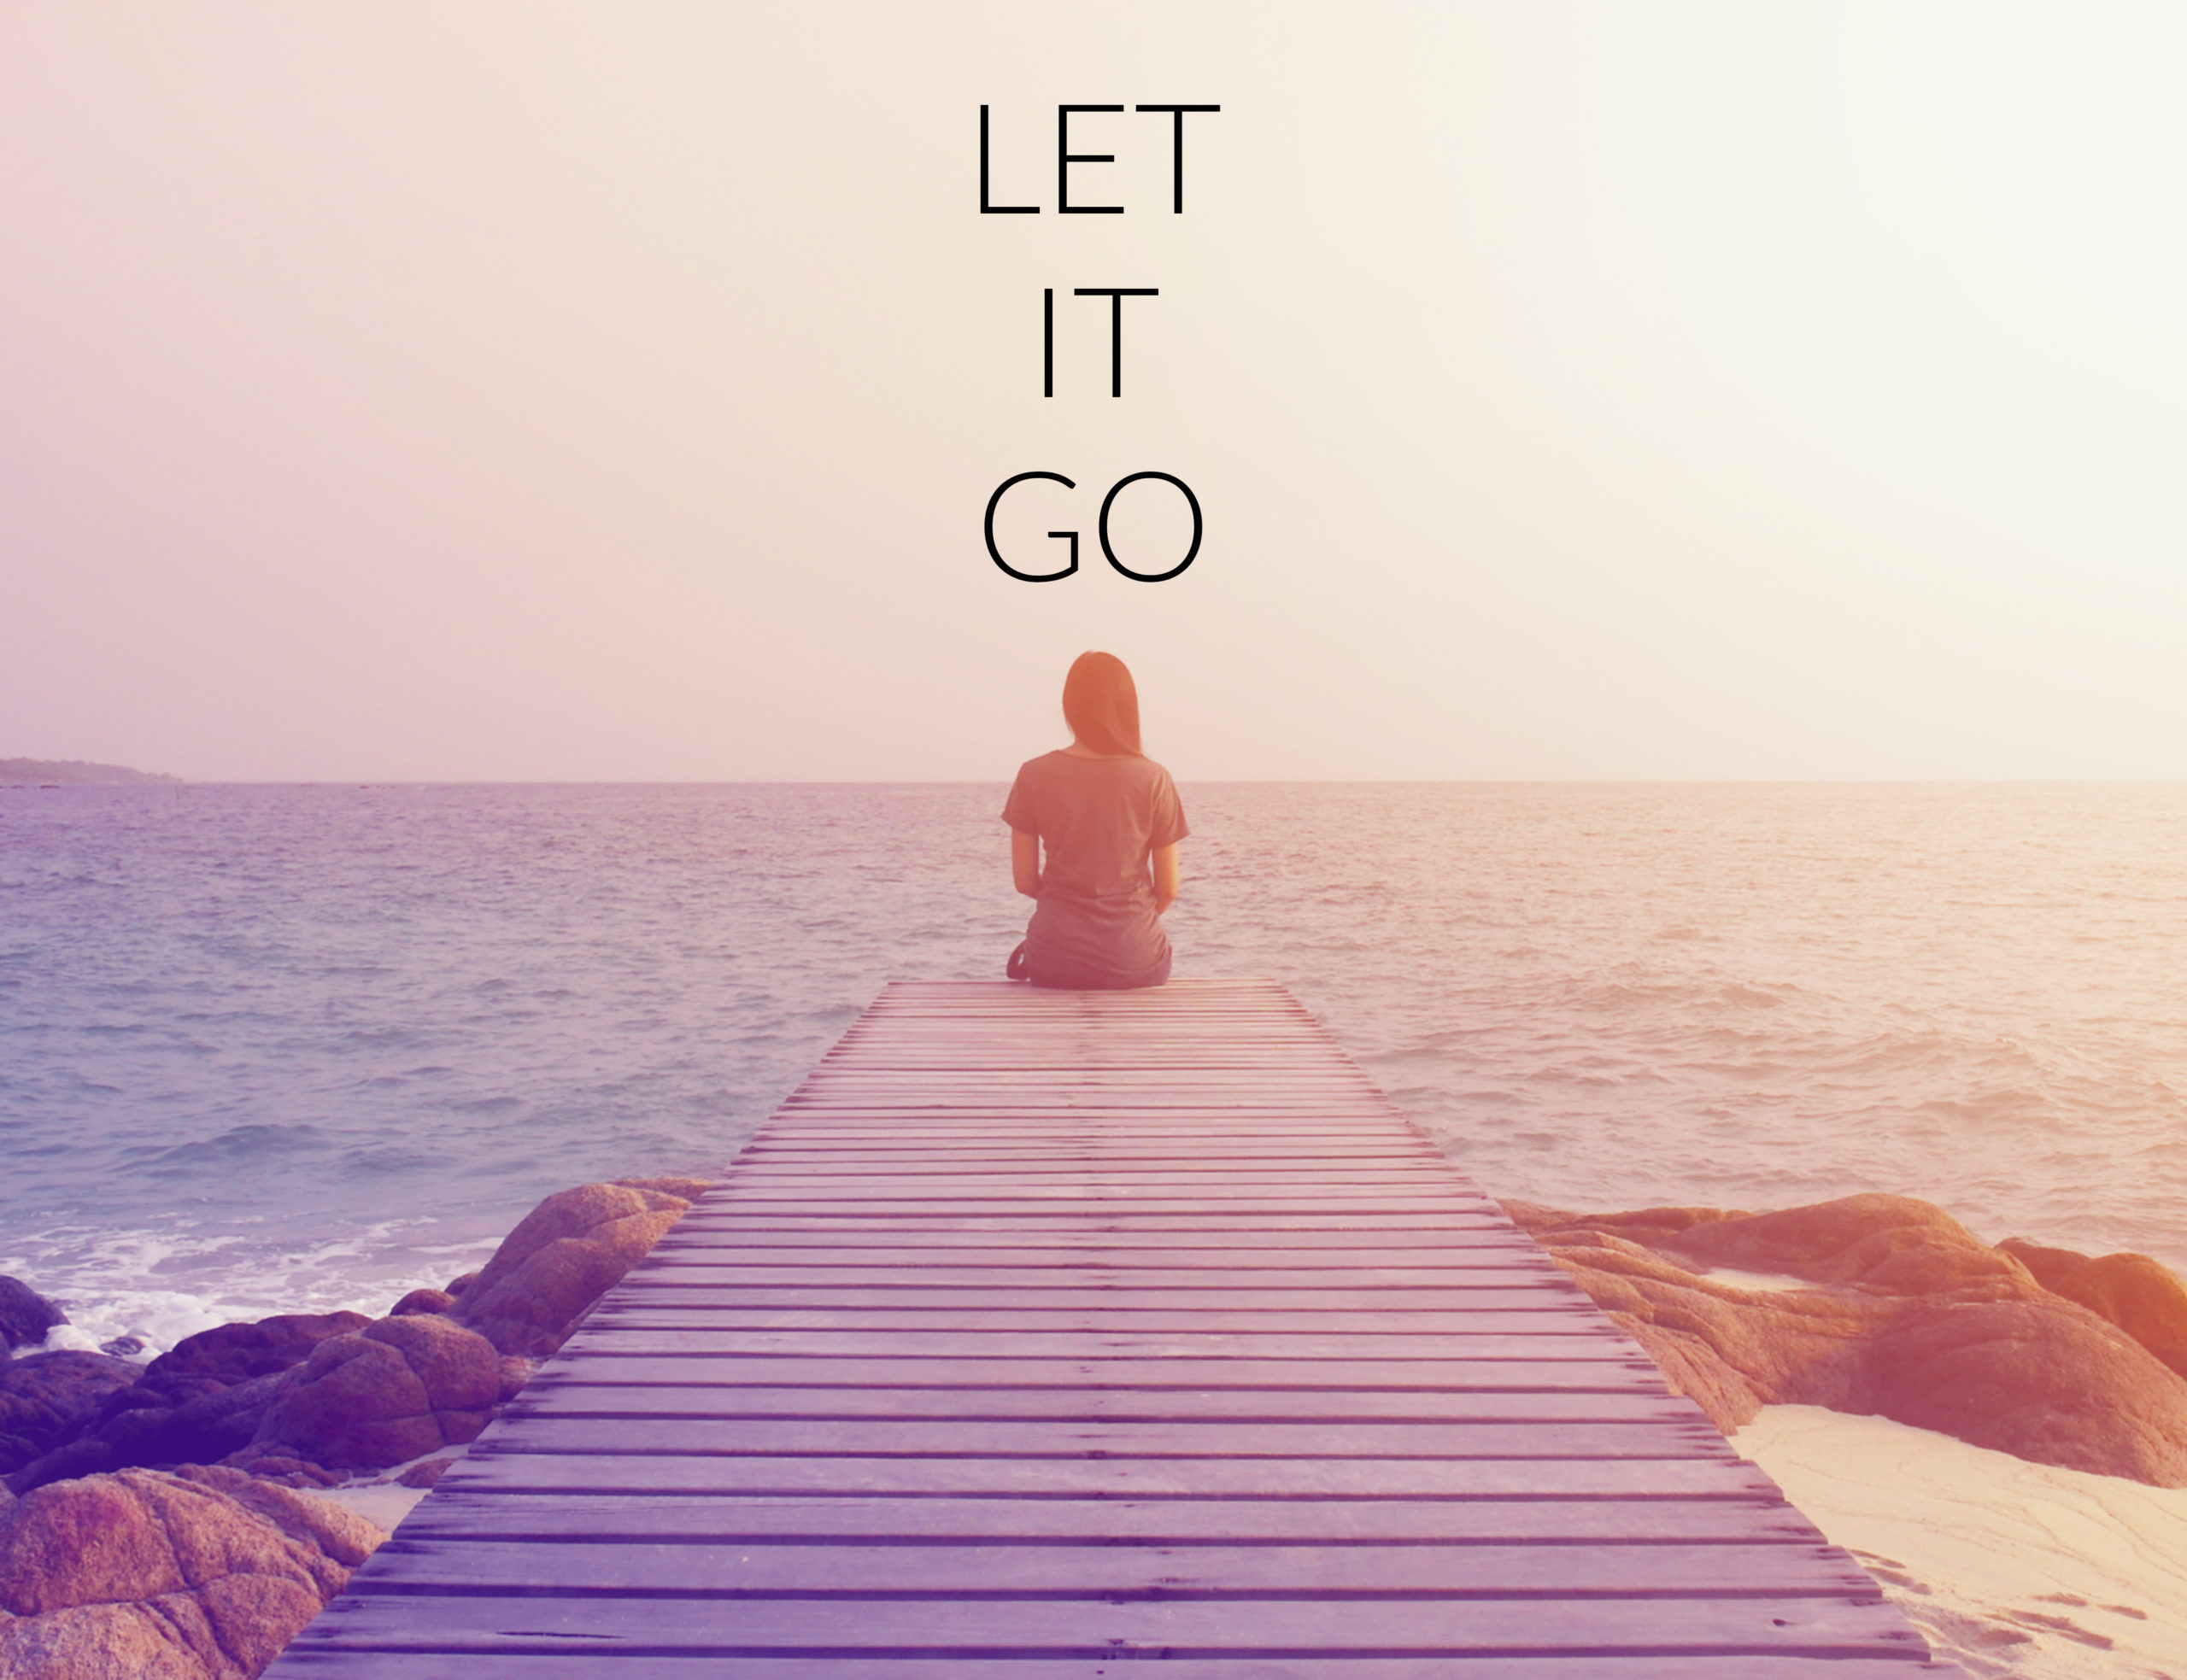 Forgiveness and letting go of anger and resentment